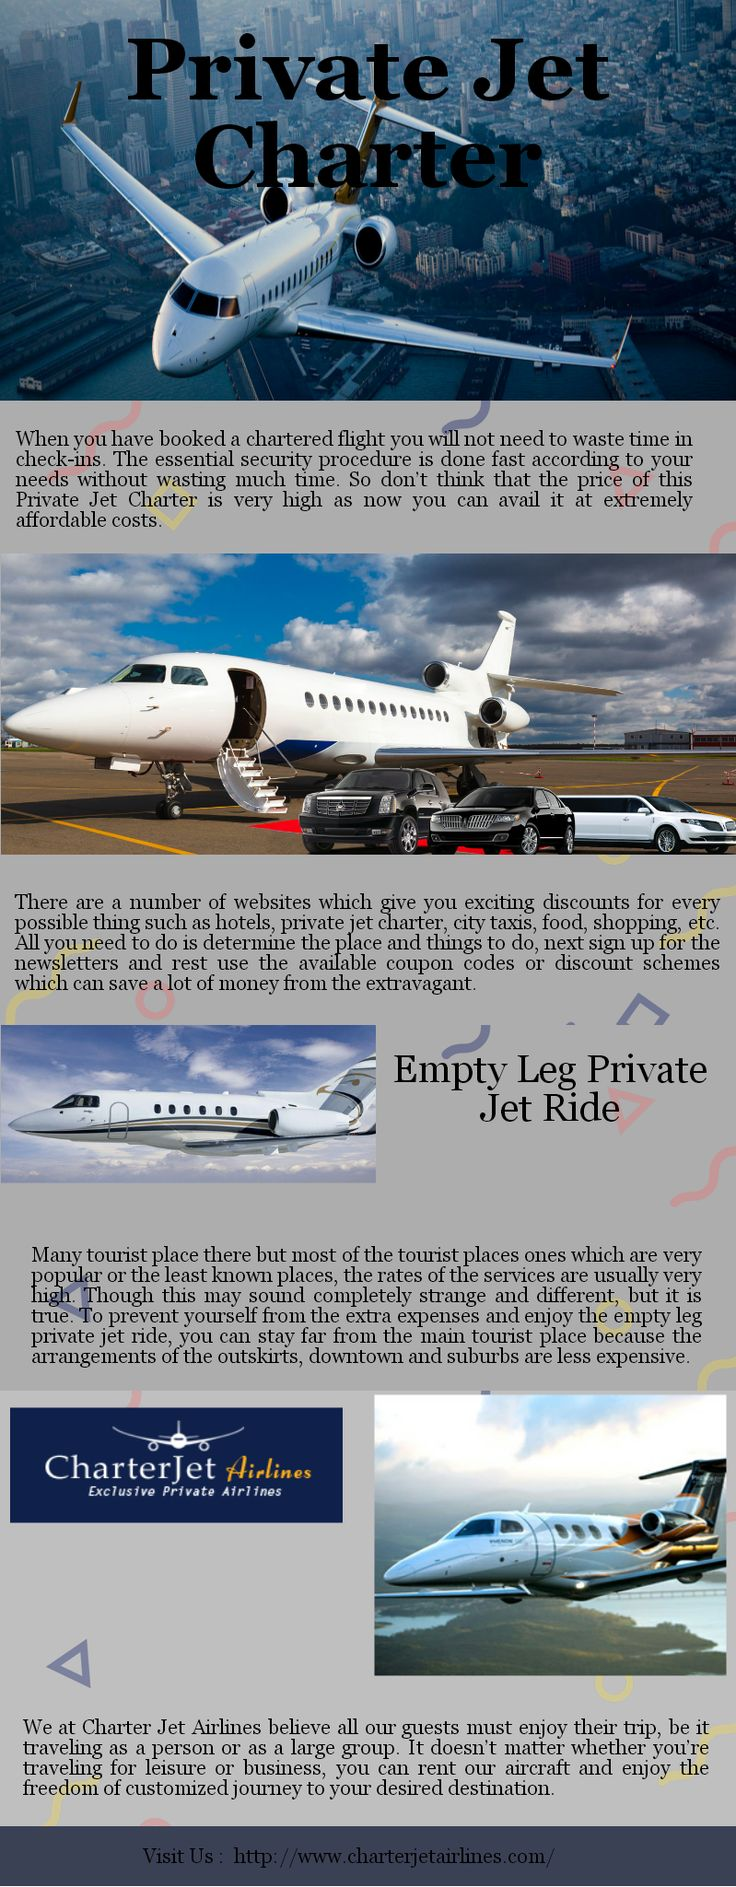 Search private jet rental prices - Hire A Private Jet Charter For Your Business Or Family Trip At An Affordable Price